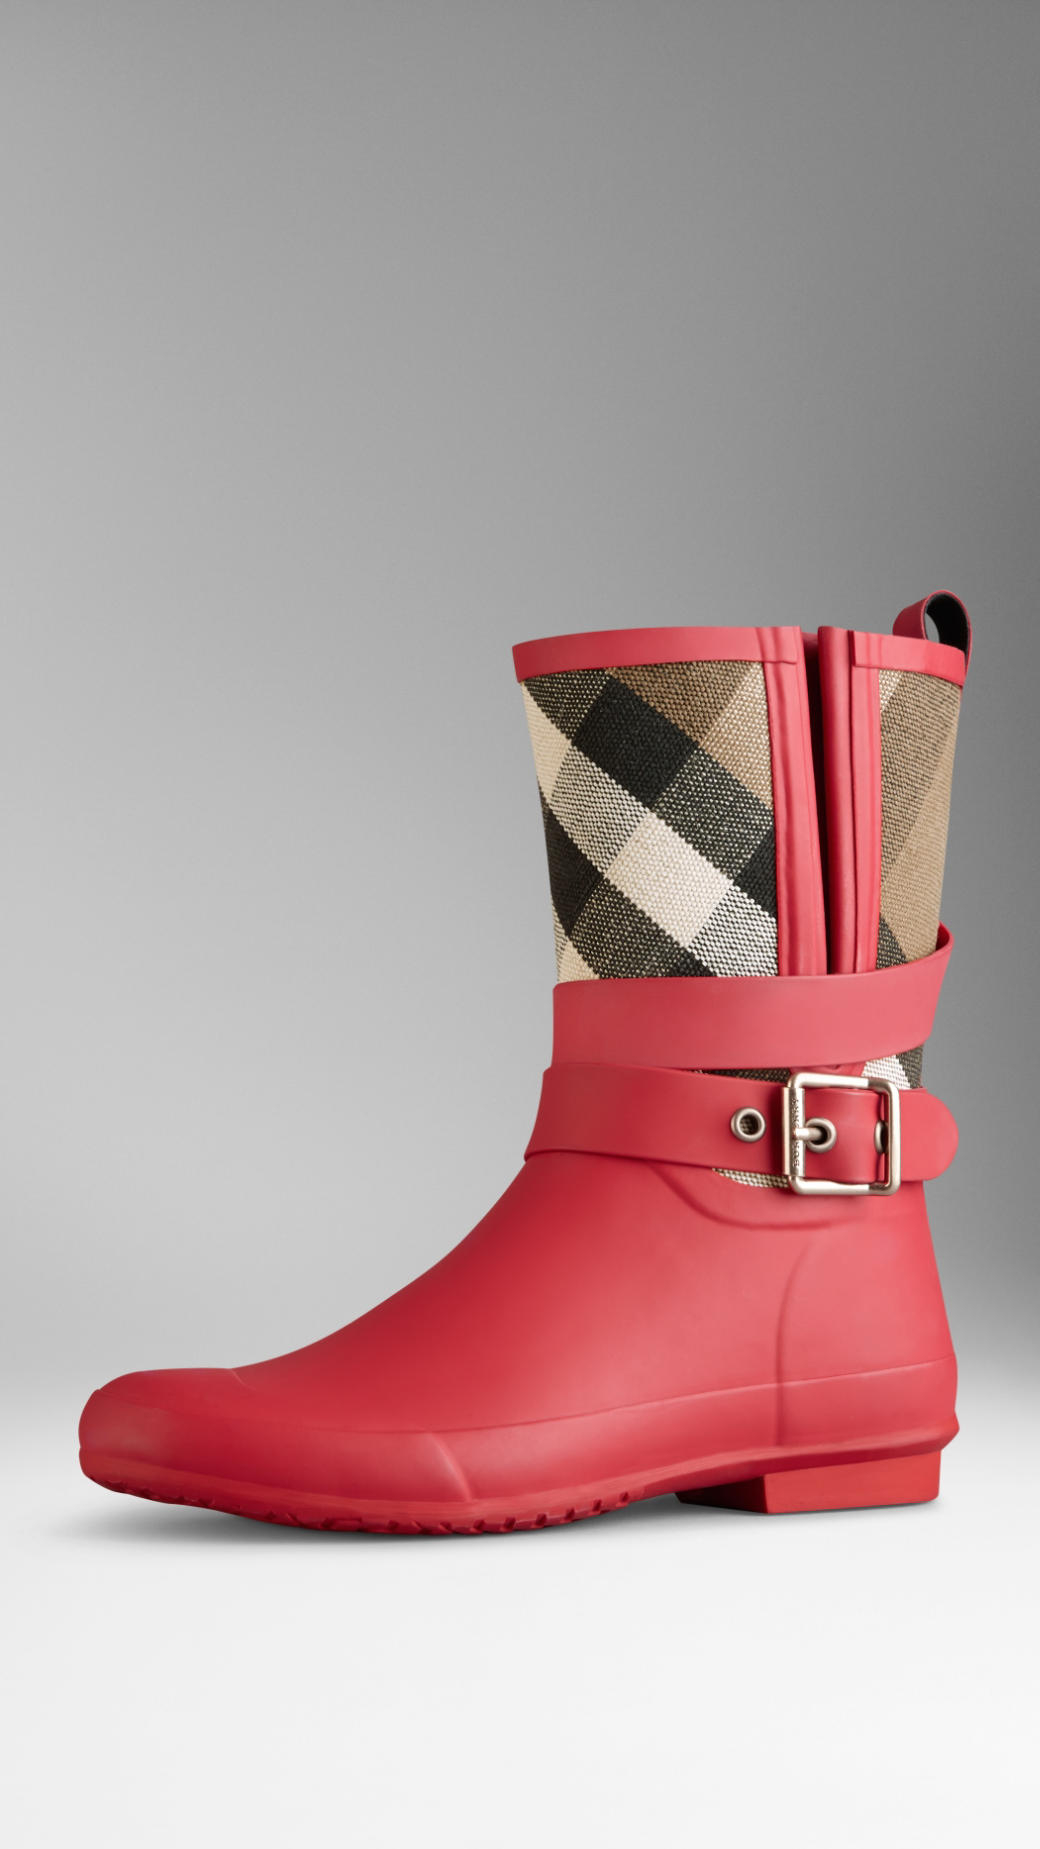 2dc7fdcf5fe2 Lyst - Burberry Belted Check Rain Boots in Pink